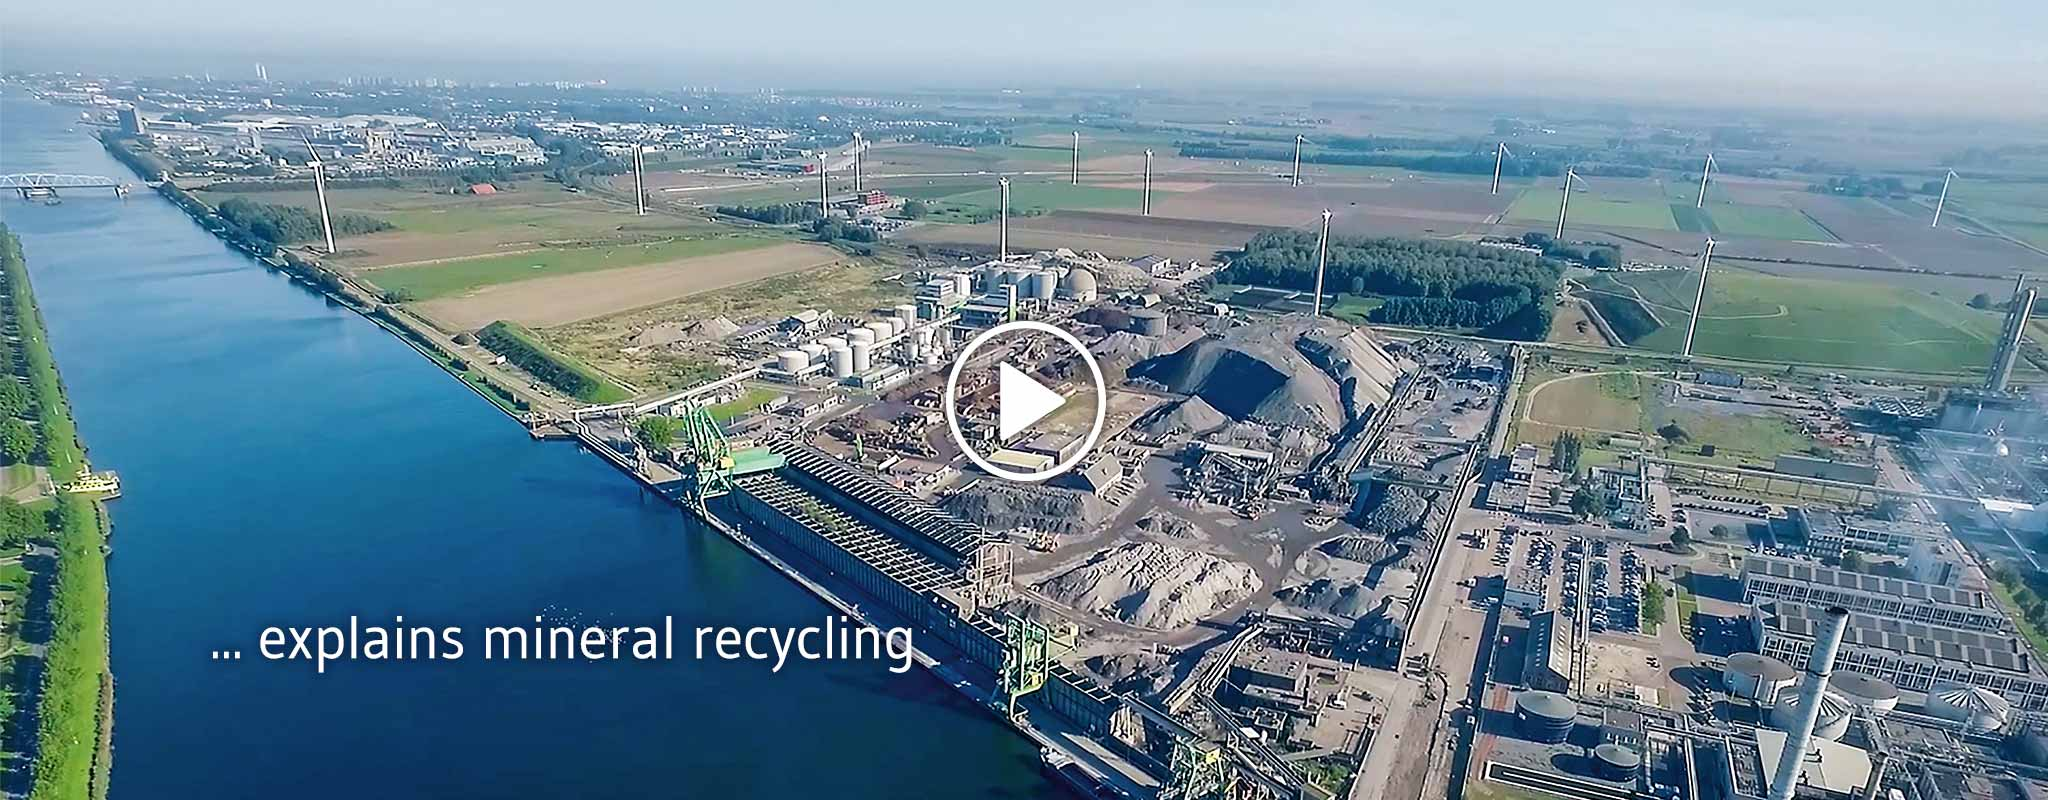 Film series explains mineral waste recycling and processing technologies